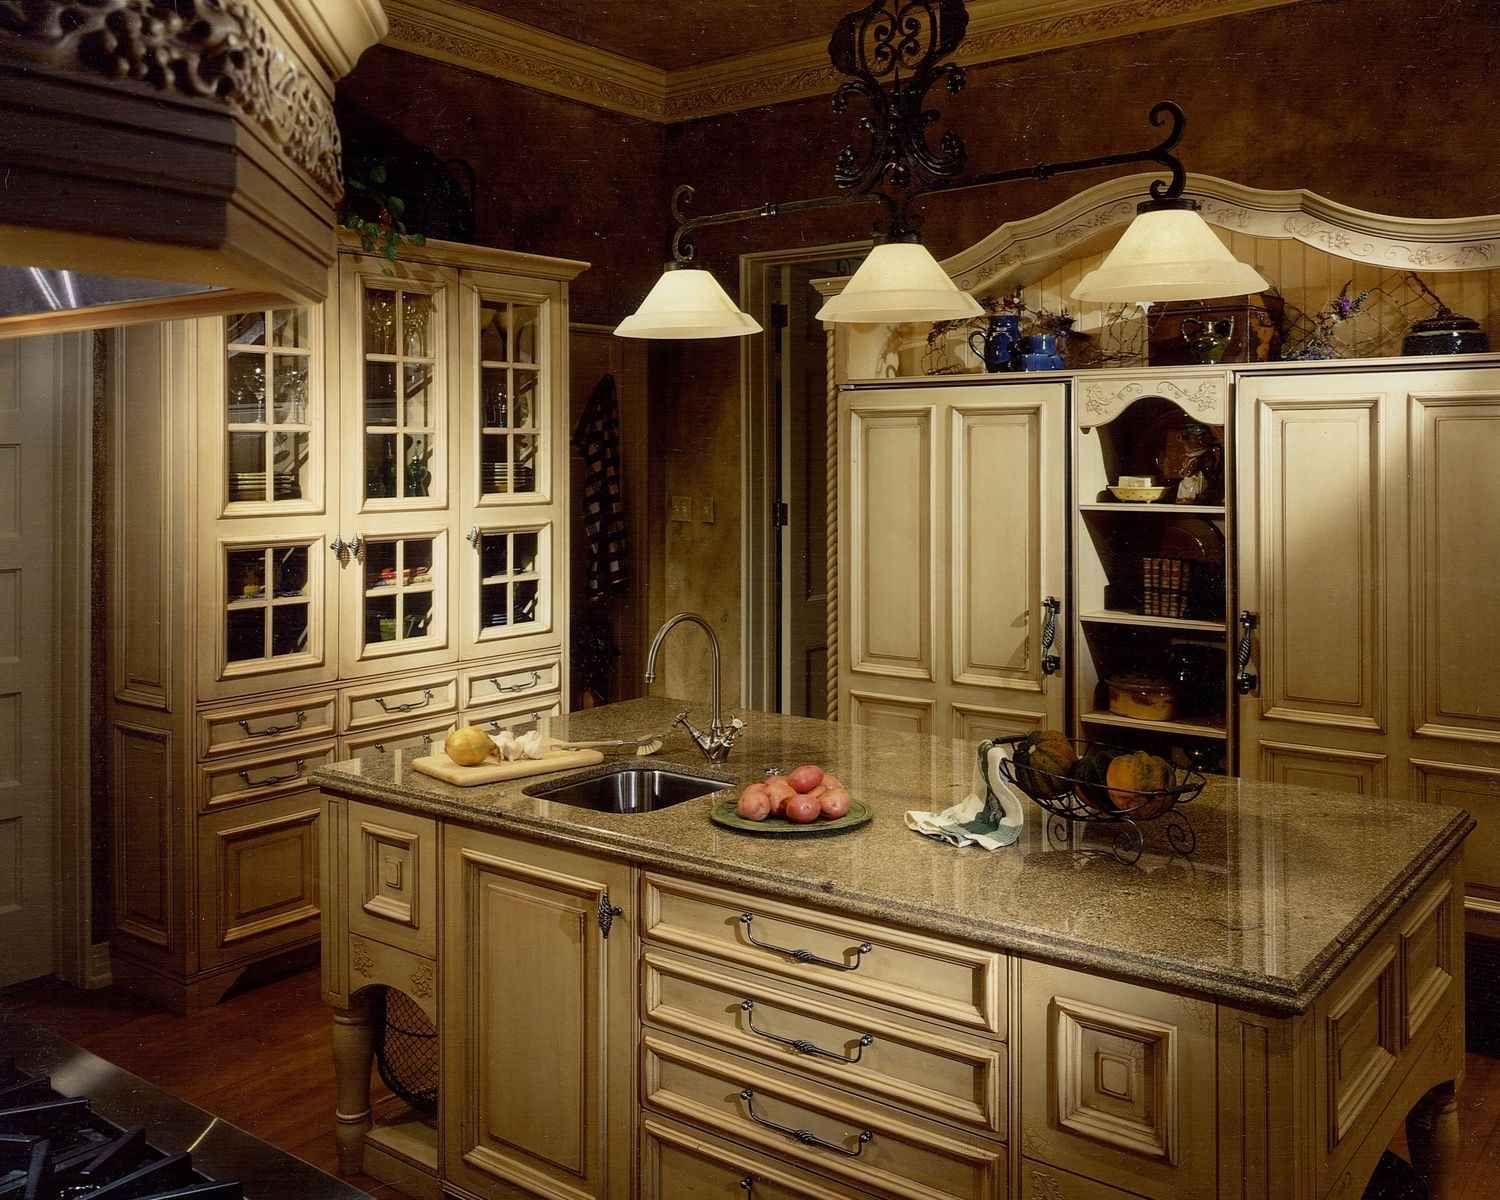 French Country Kitchen Décor French Country Kitchens Kitchens And